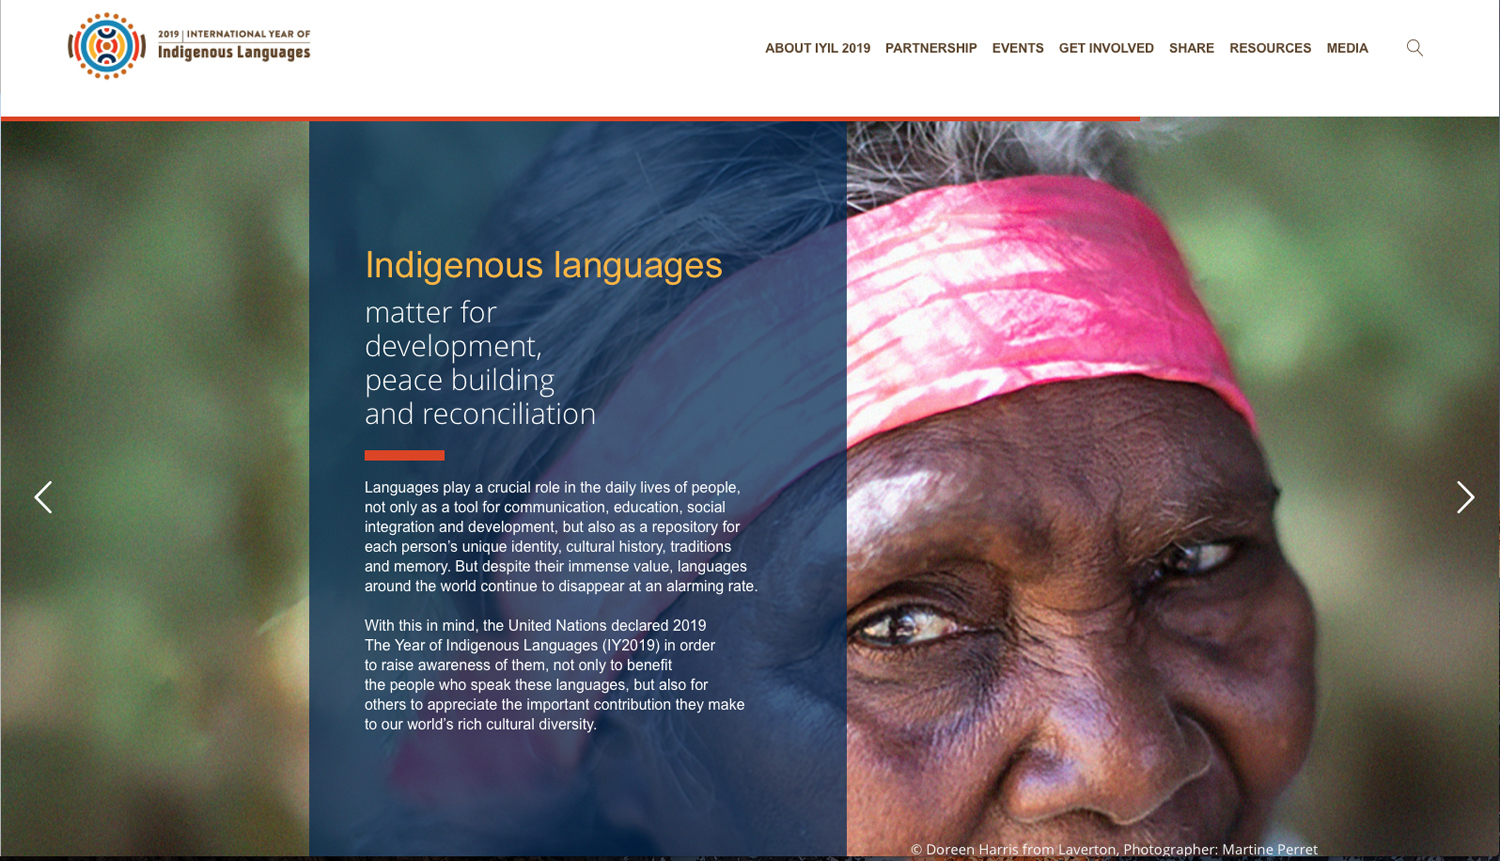 2019 has been declared the Year of Indigenous Languages by the United Nations.